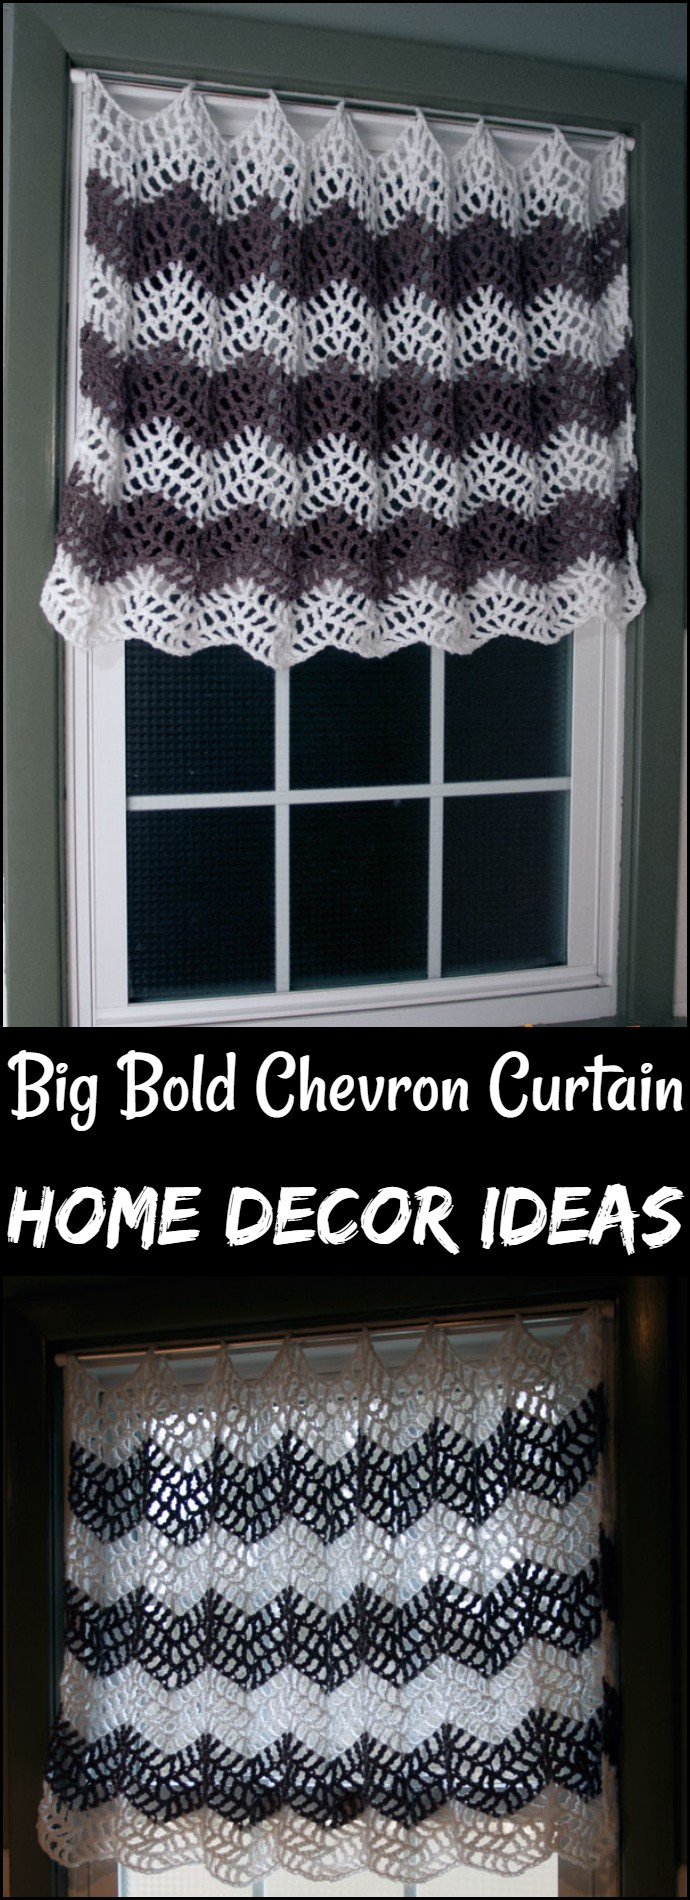 Big Bold Chevron Curtain Home Decor Ideas